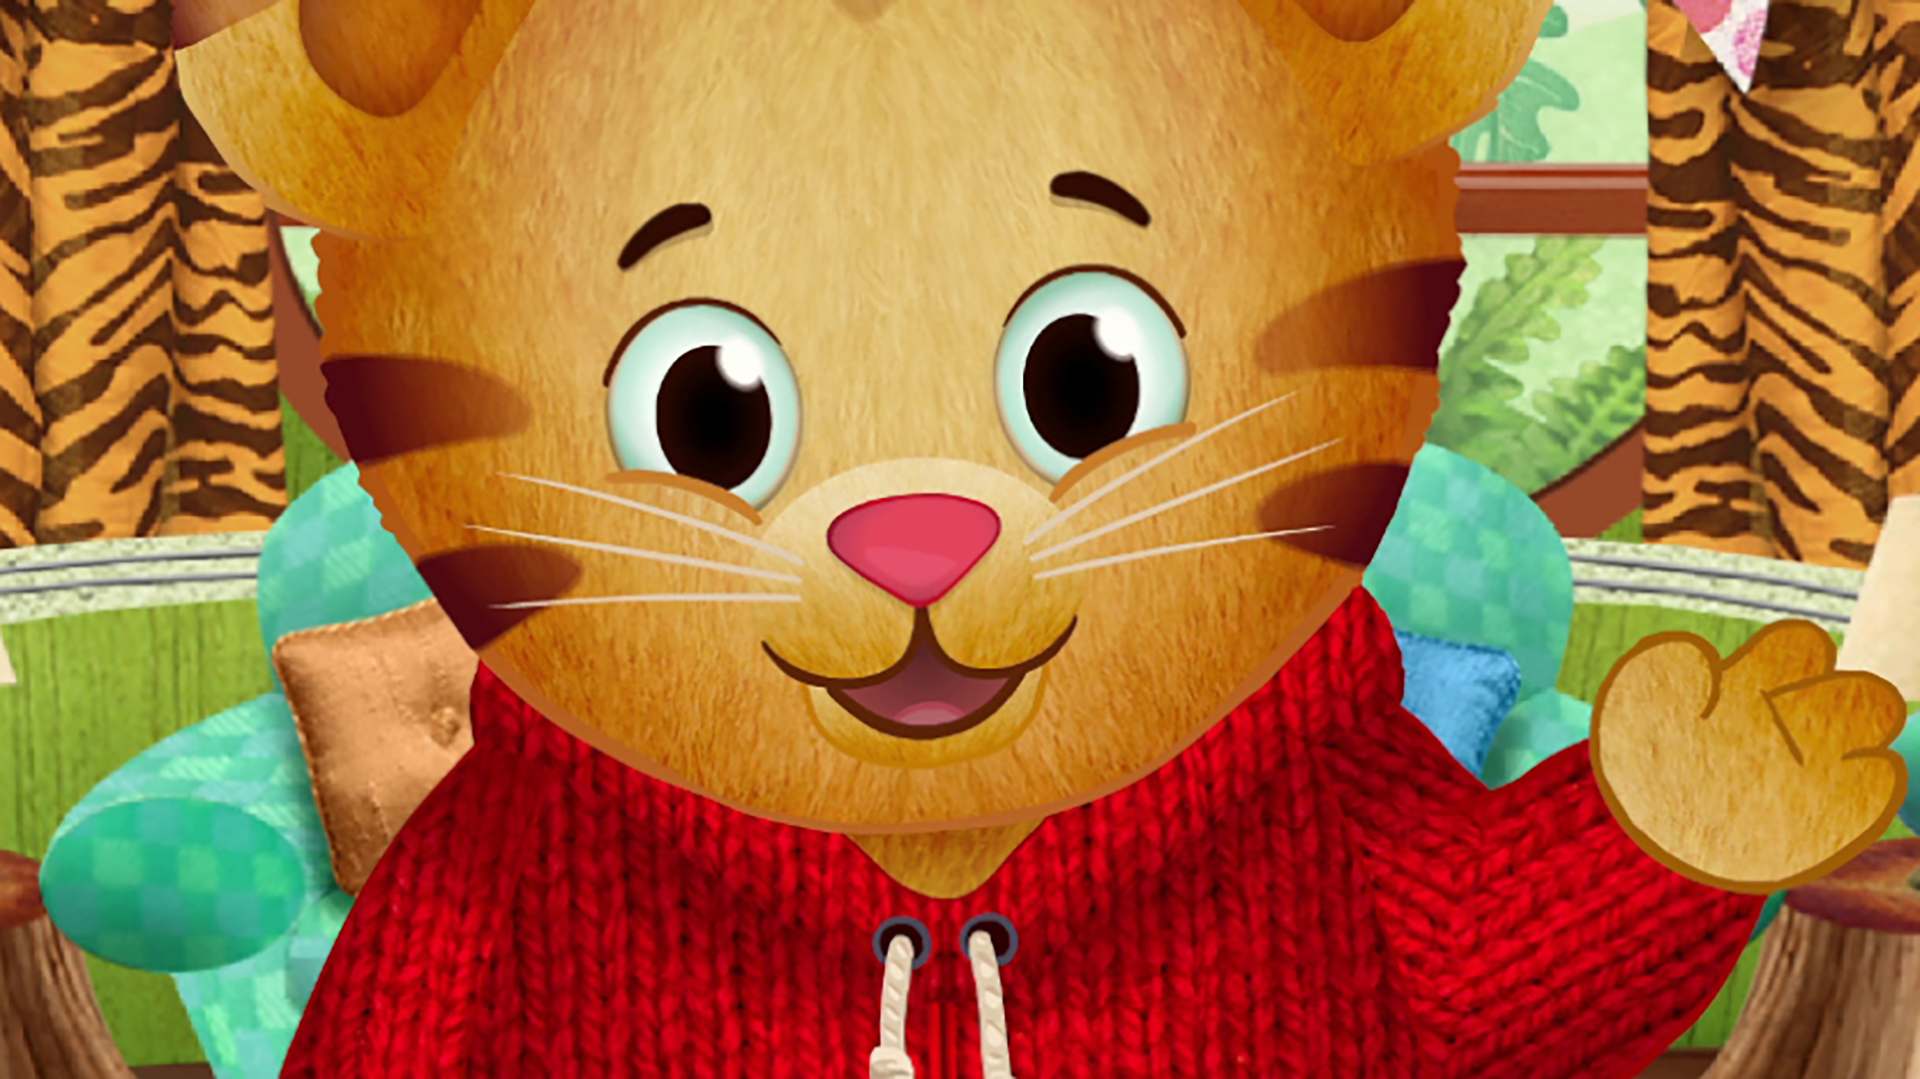 New 24/7 PBS Kids channel launches in Amarillo area